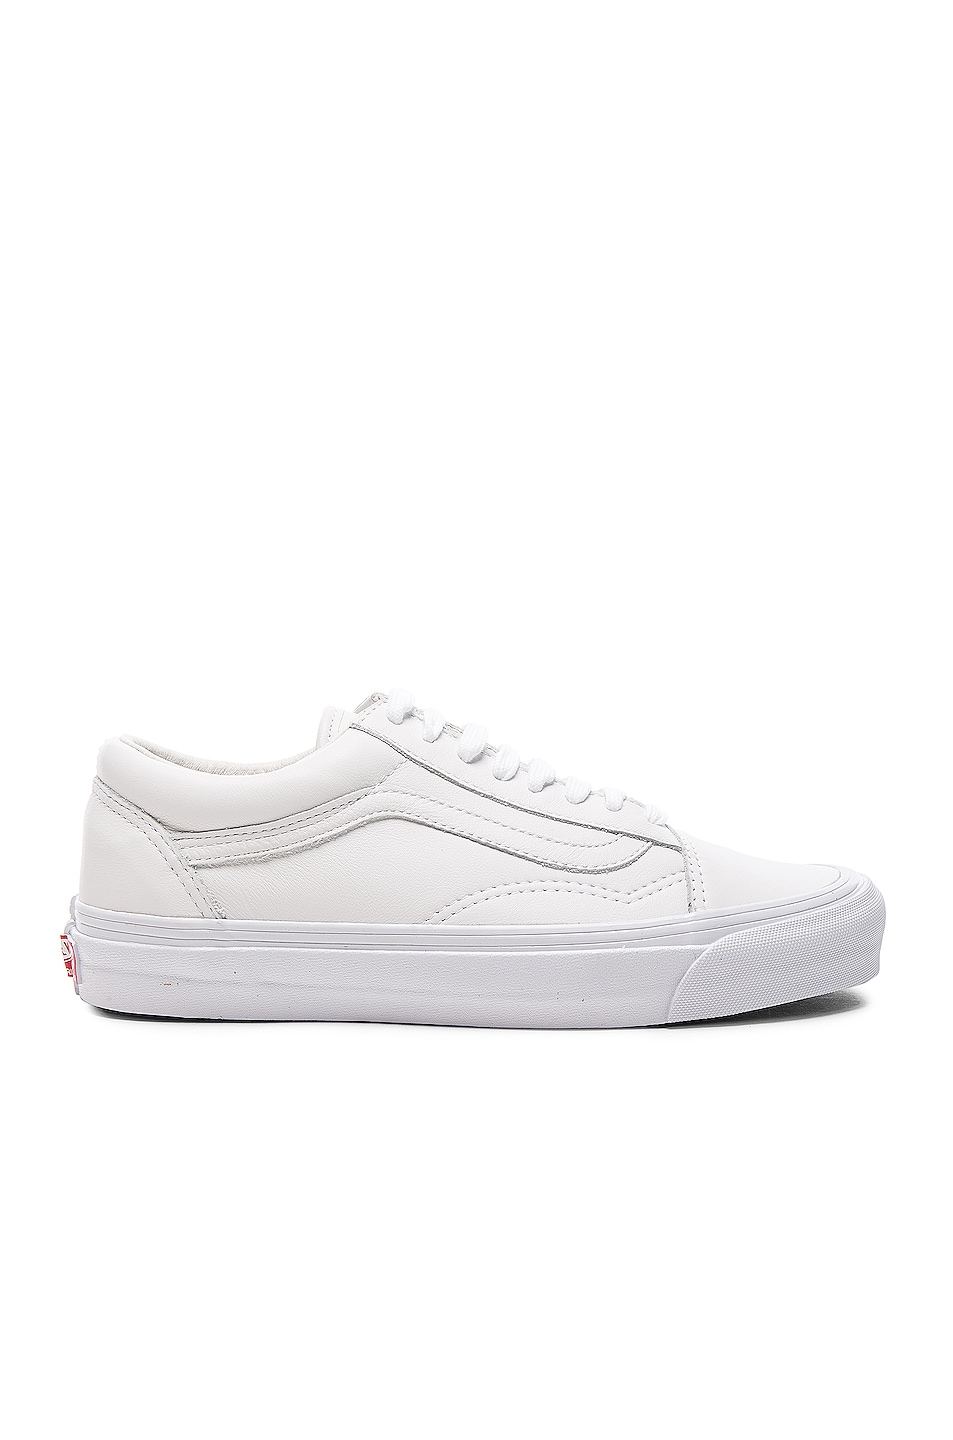 Image 1 of Vans Vault Leather OG Old Skool LX in White